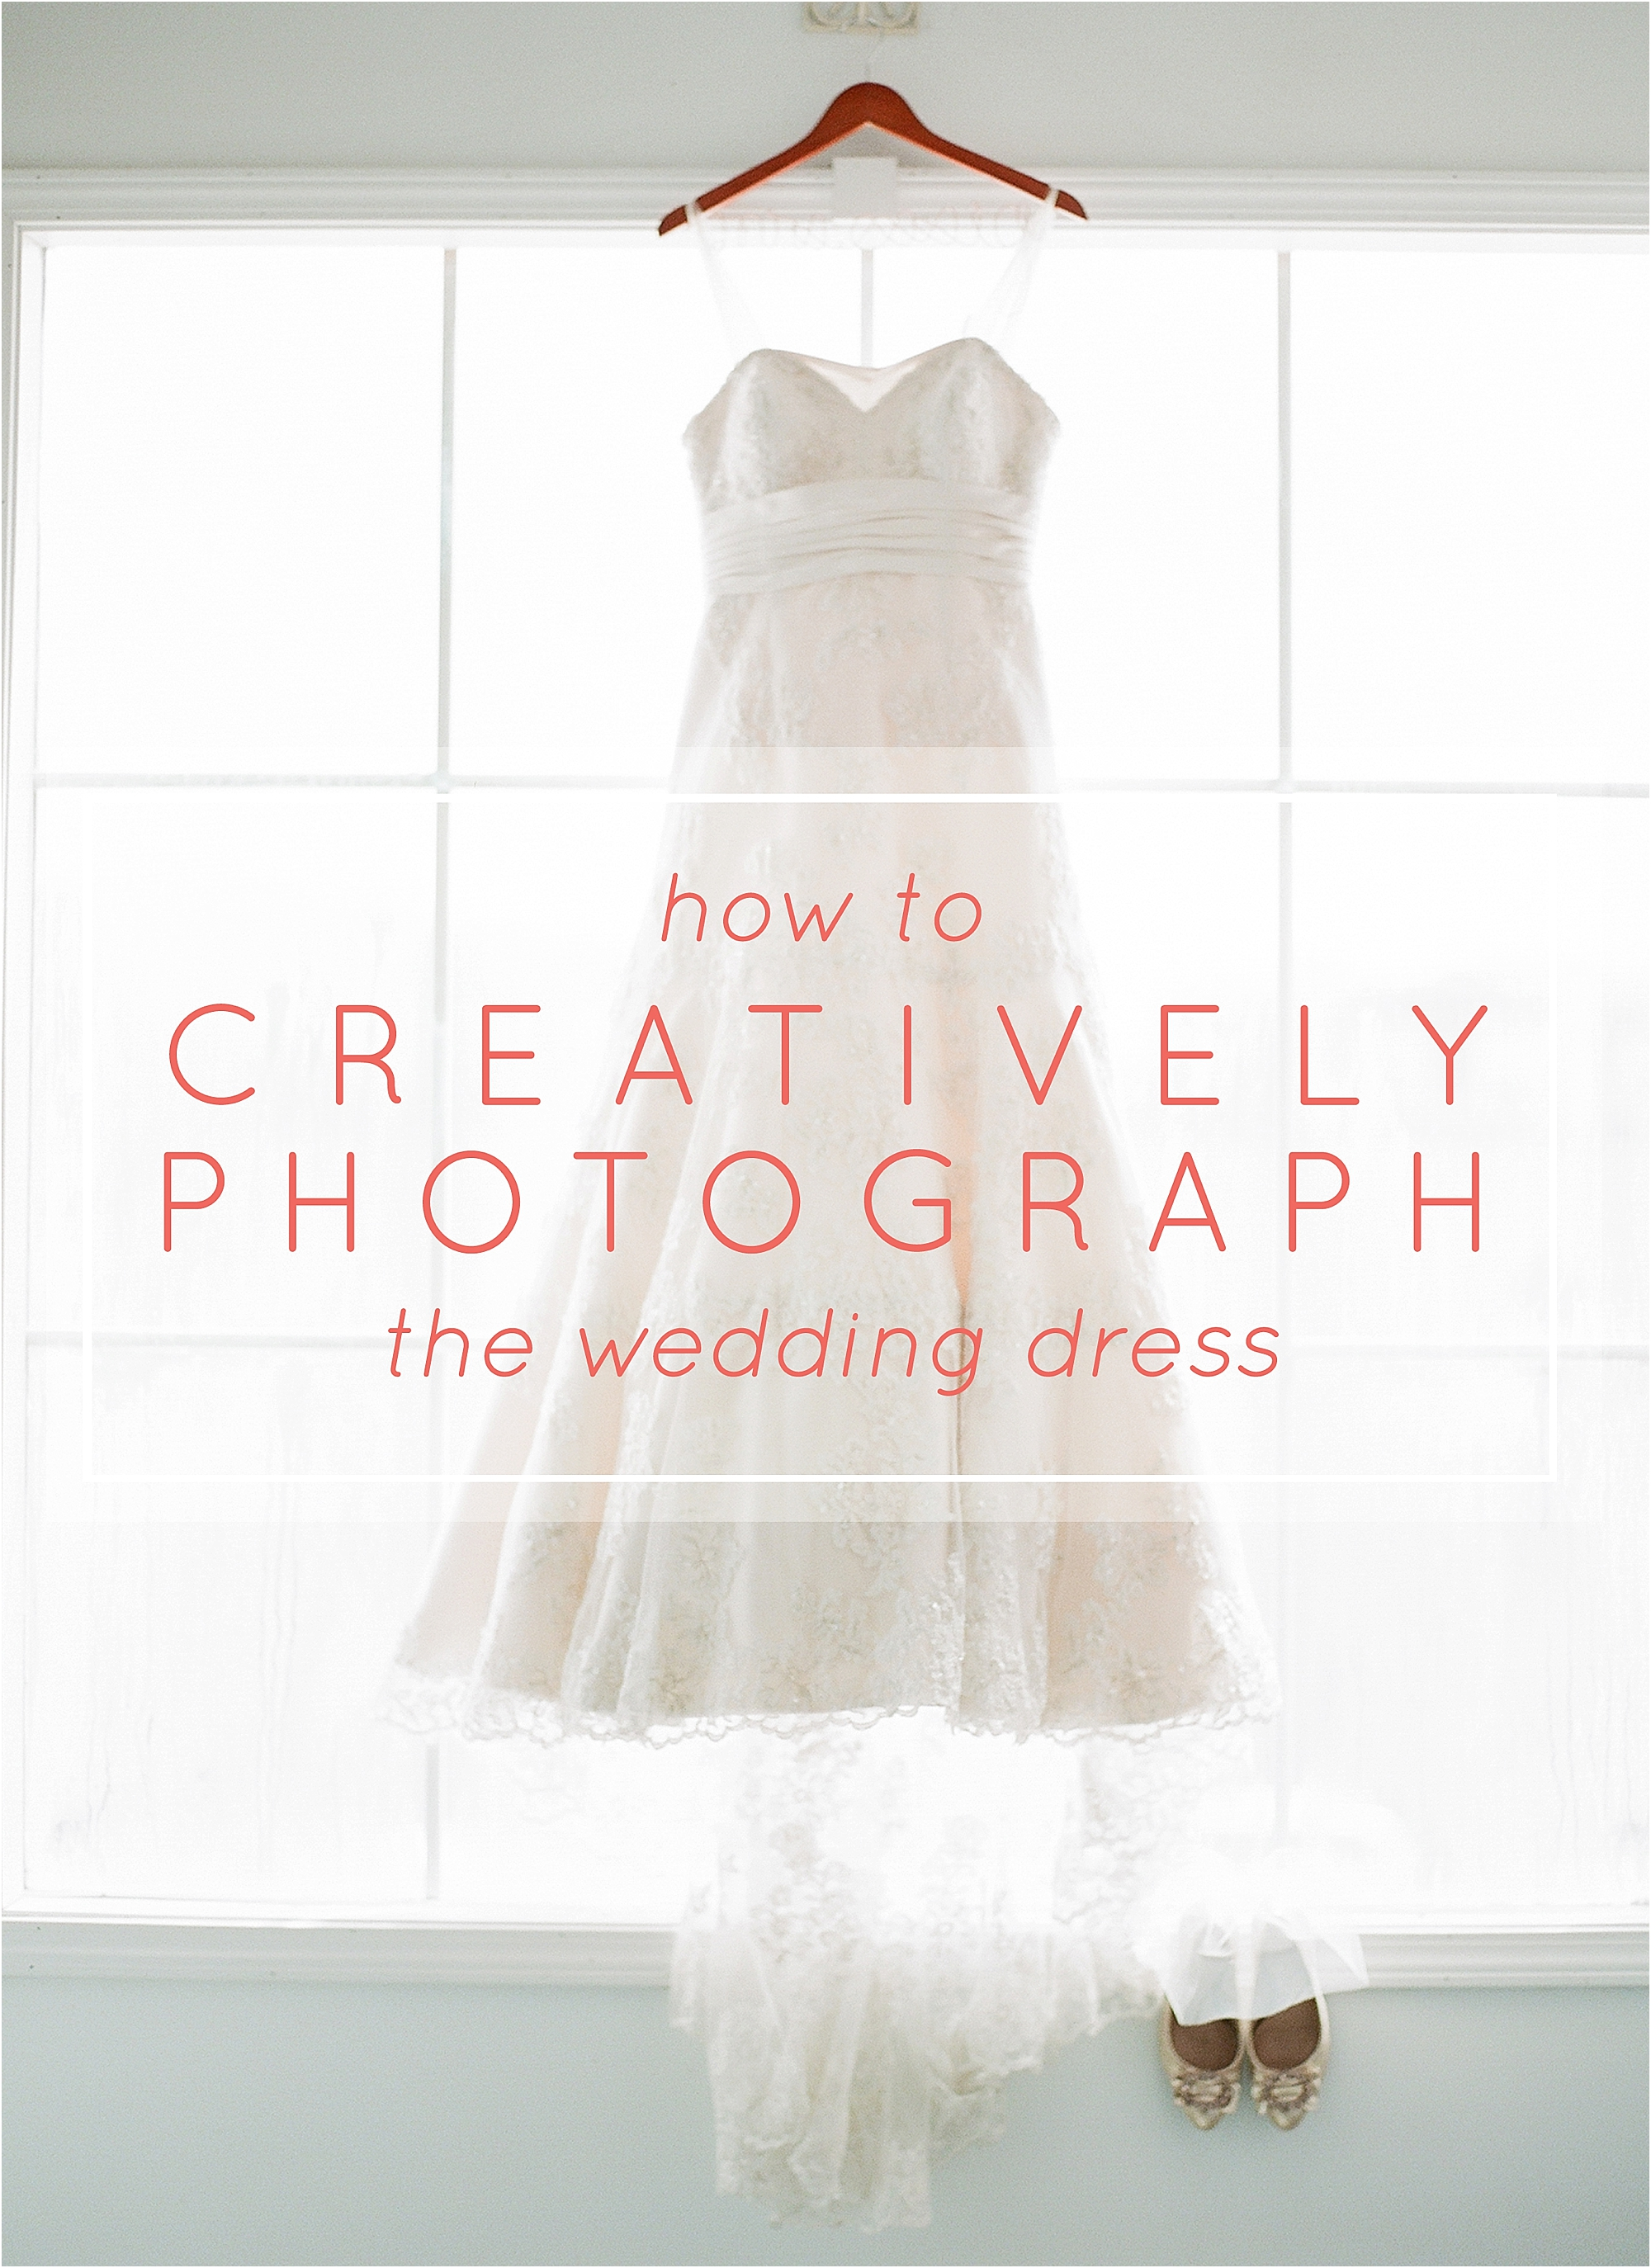 How to Creatively Photograph the Wedding Dress - The Jordan Brittley Blog